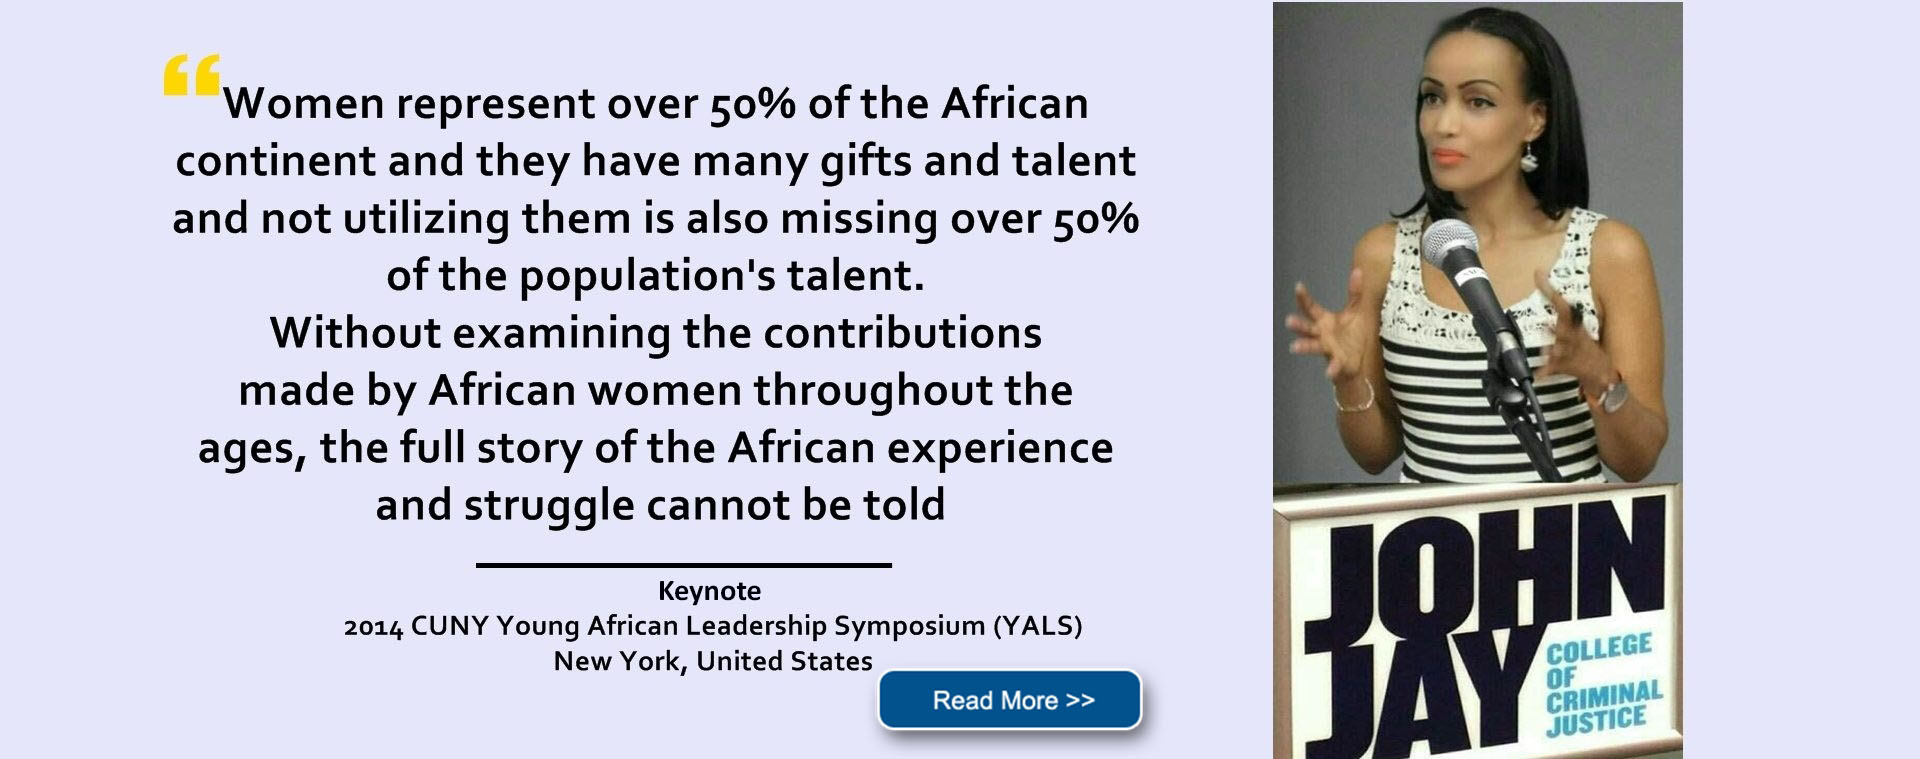 CUNY Young African Leadership Symposium (YALS) CUNY, New York, United States